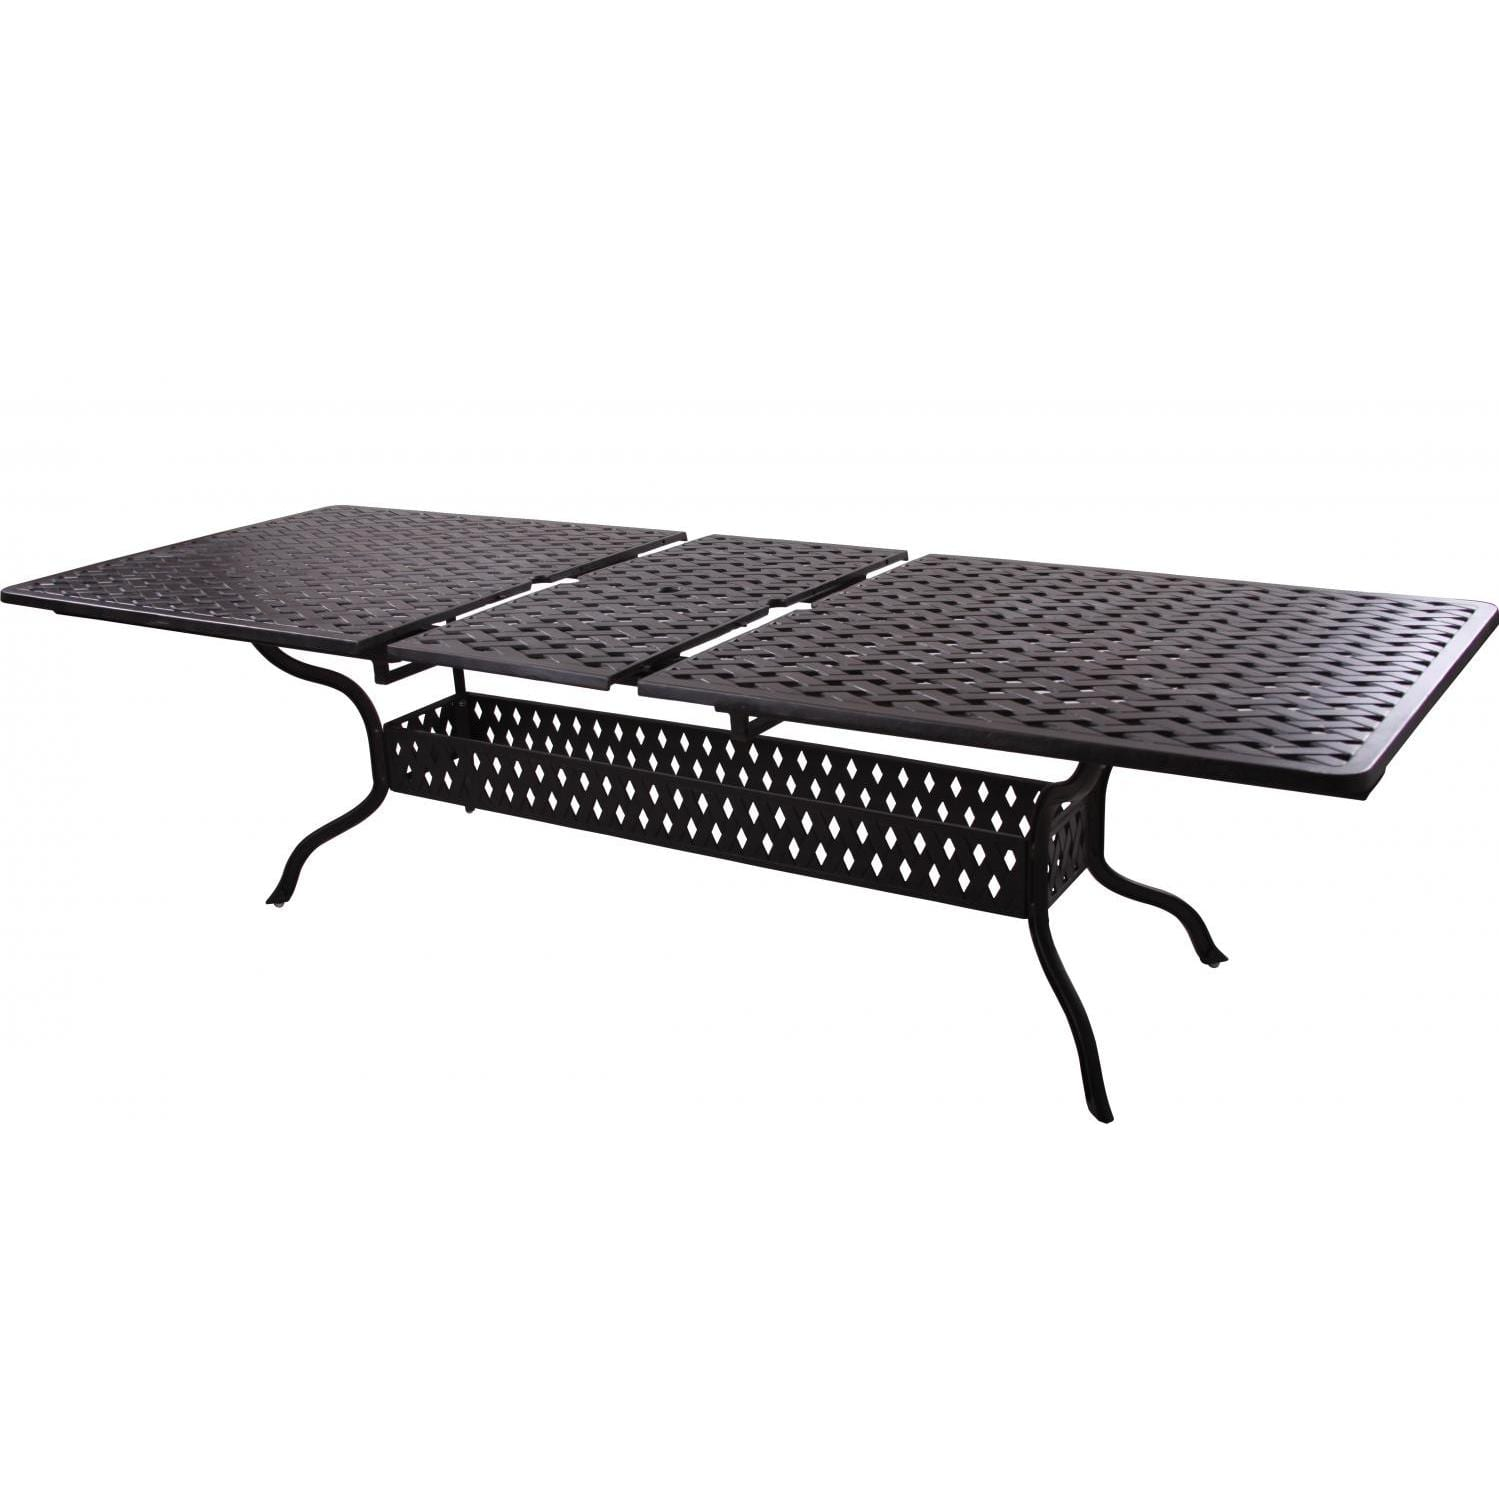 Darlee Series 30 Rectangular Extension Patio Dining Table - Extended